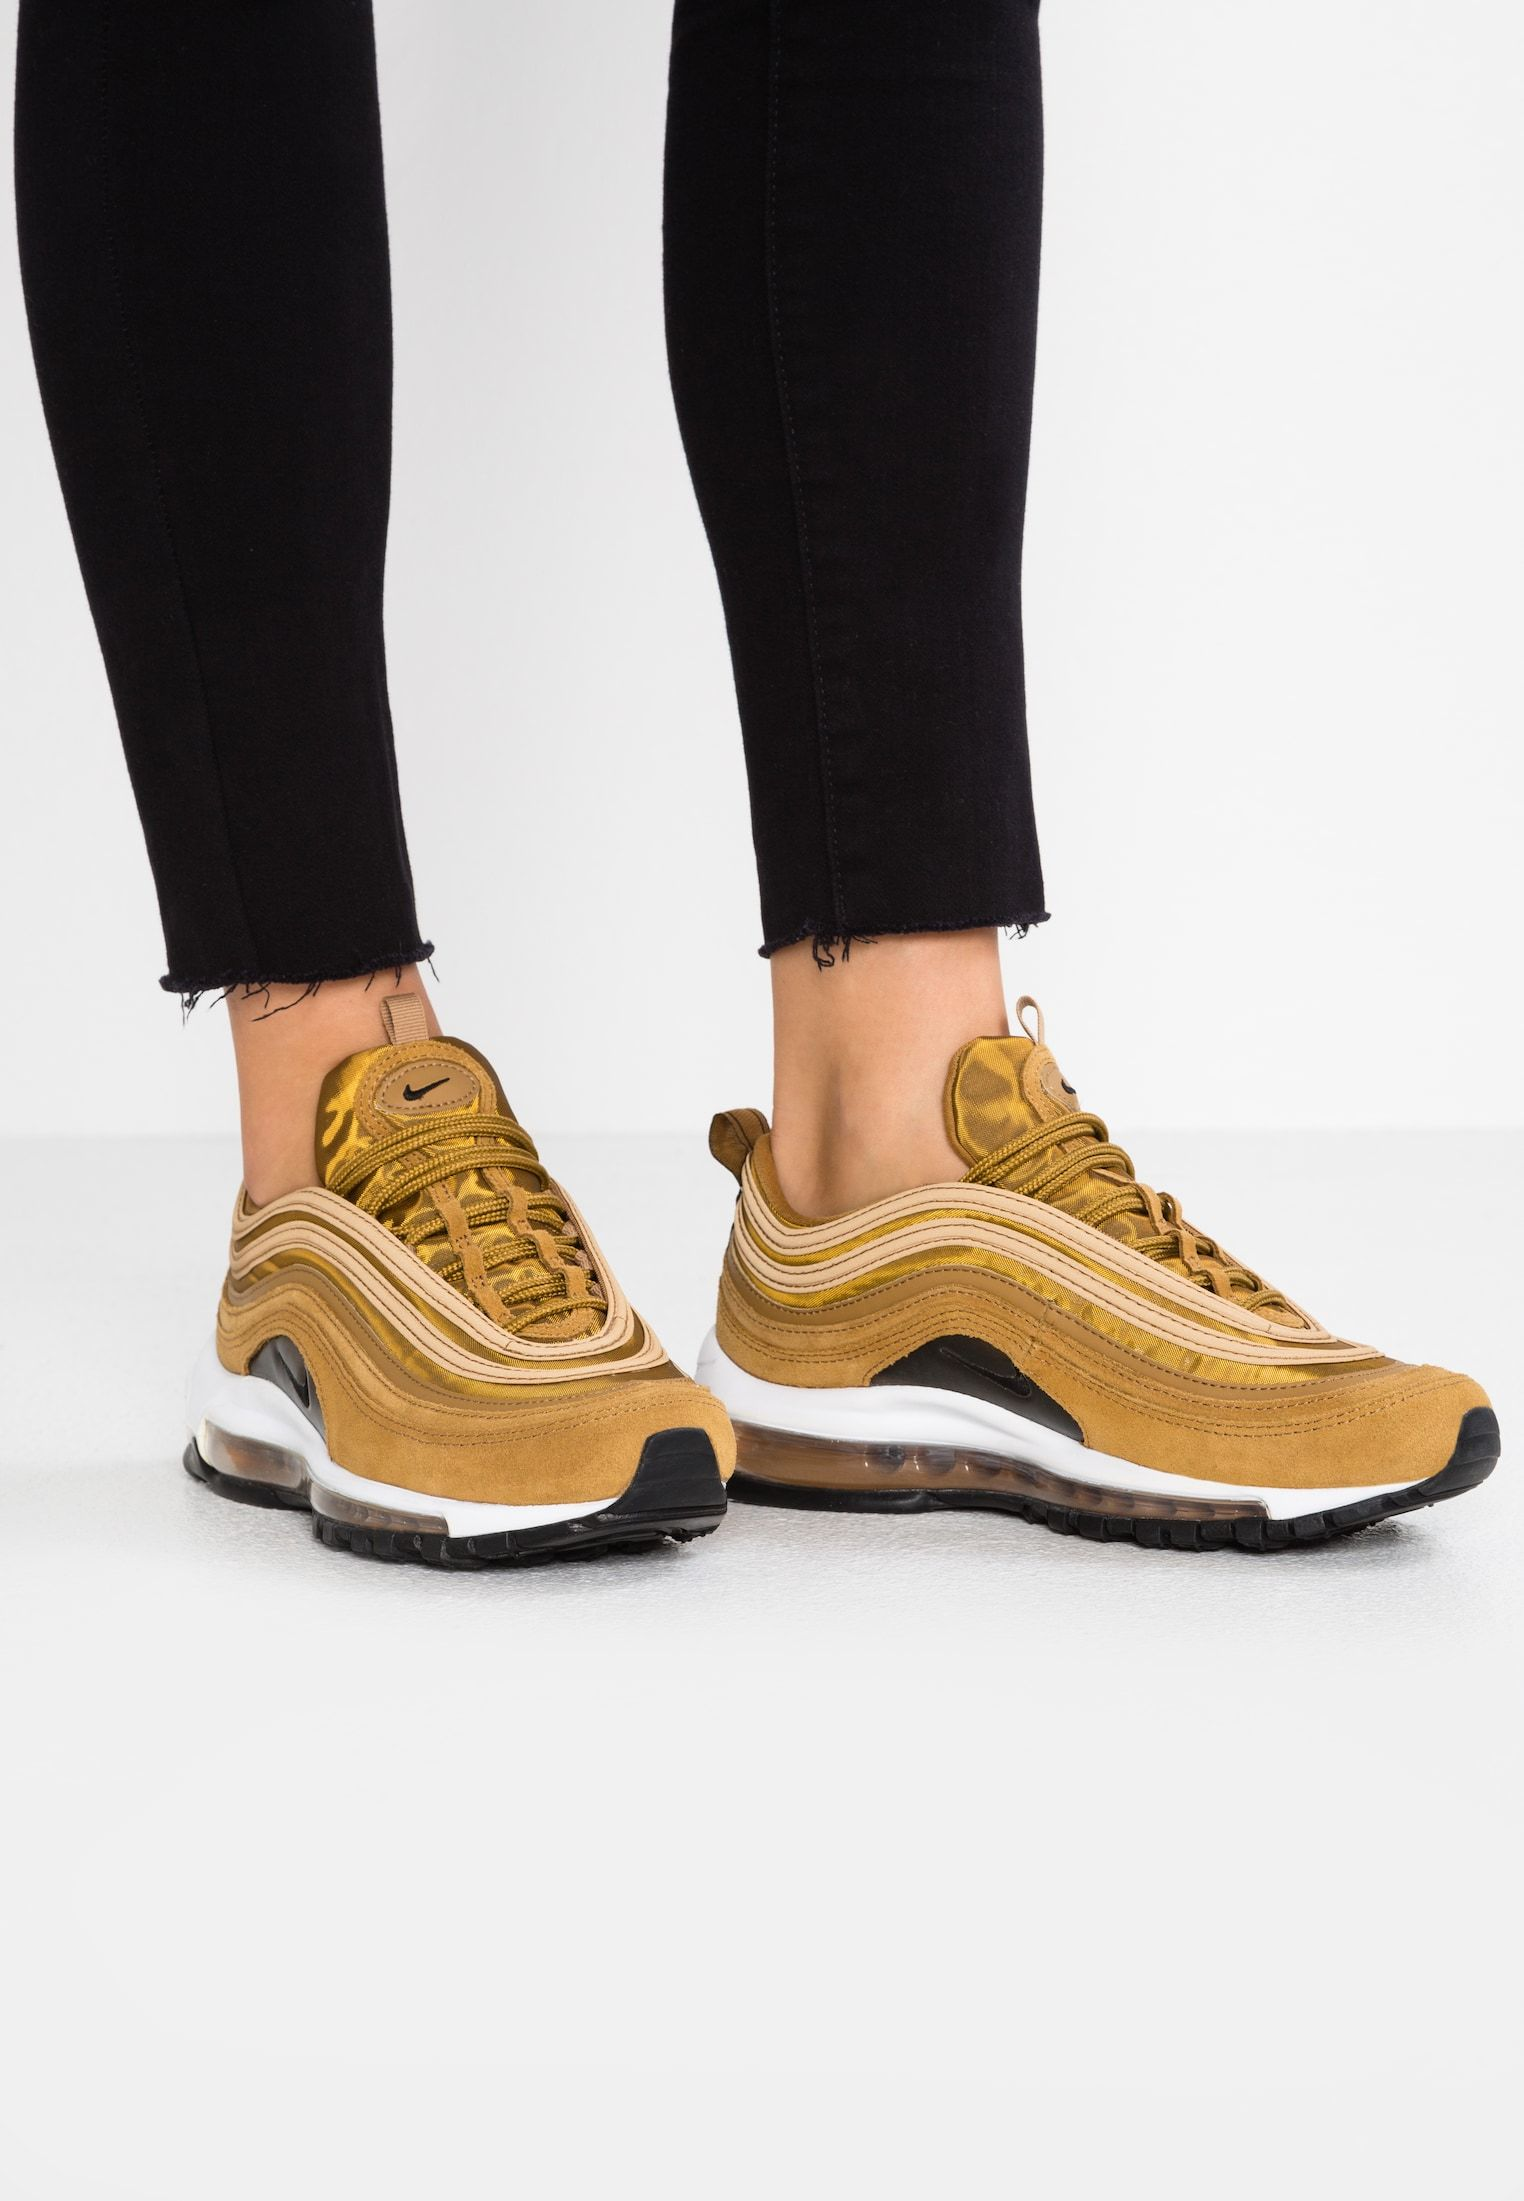 on sale 2973a be66b Nike Sportswear AIR MAX 97 SE - Sneakers - muted bronze white black -